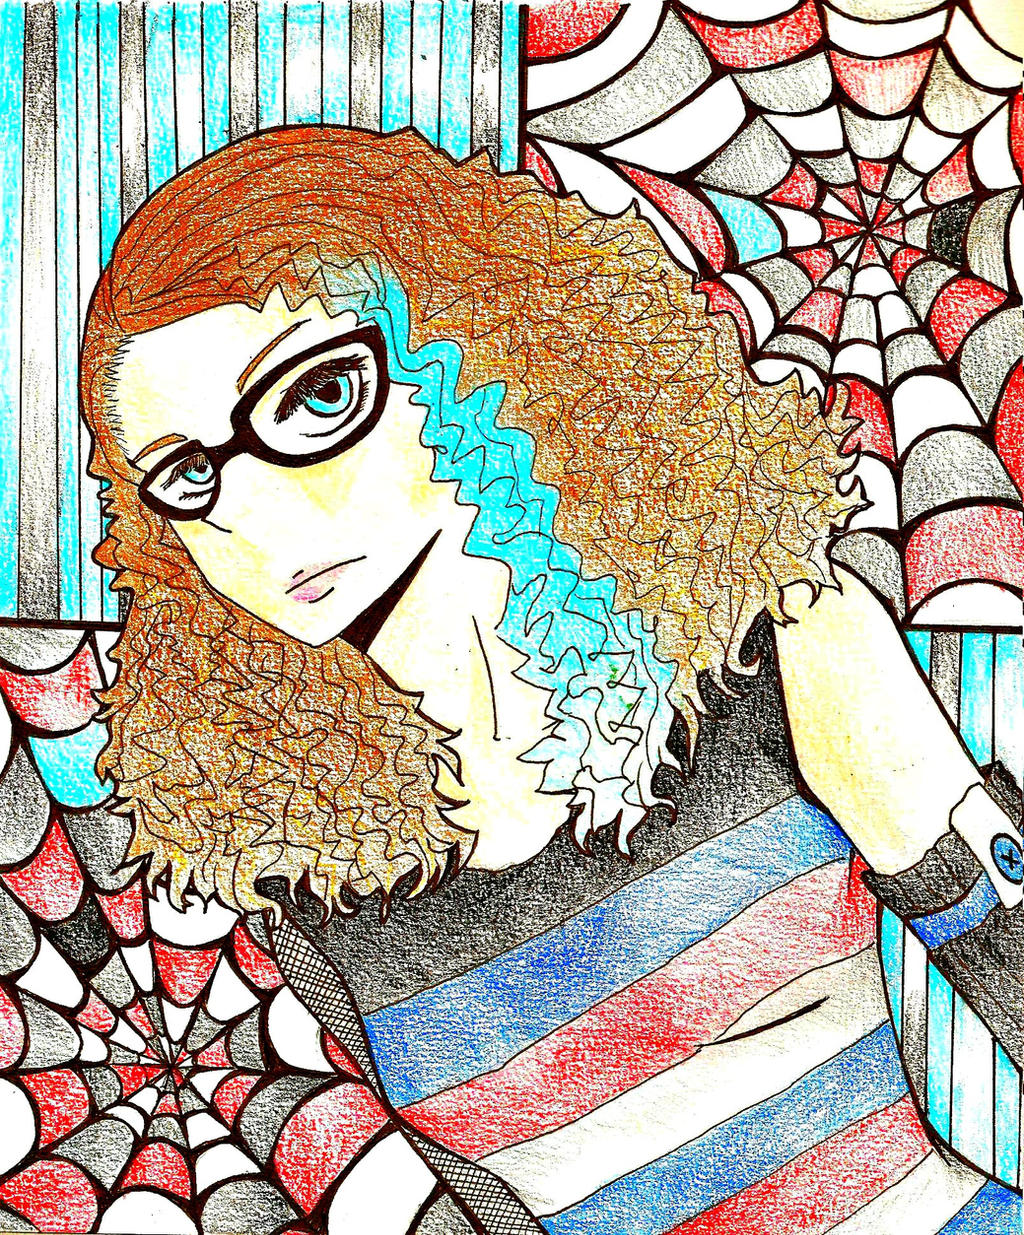 HBD Chick With Curly Hair and Spider Webs by midousuji